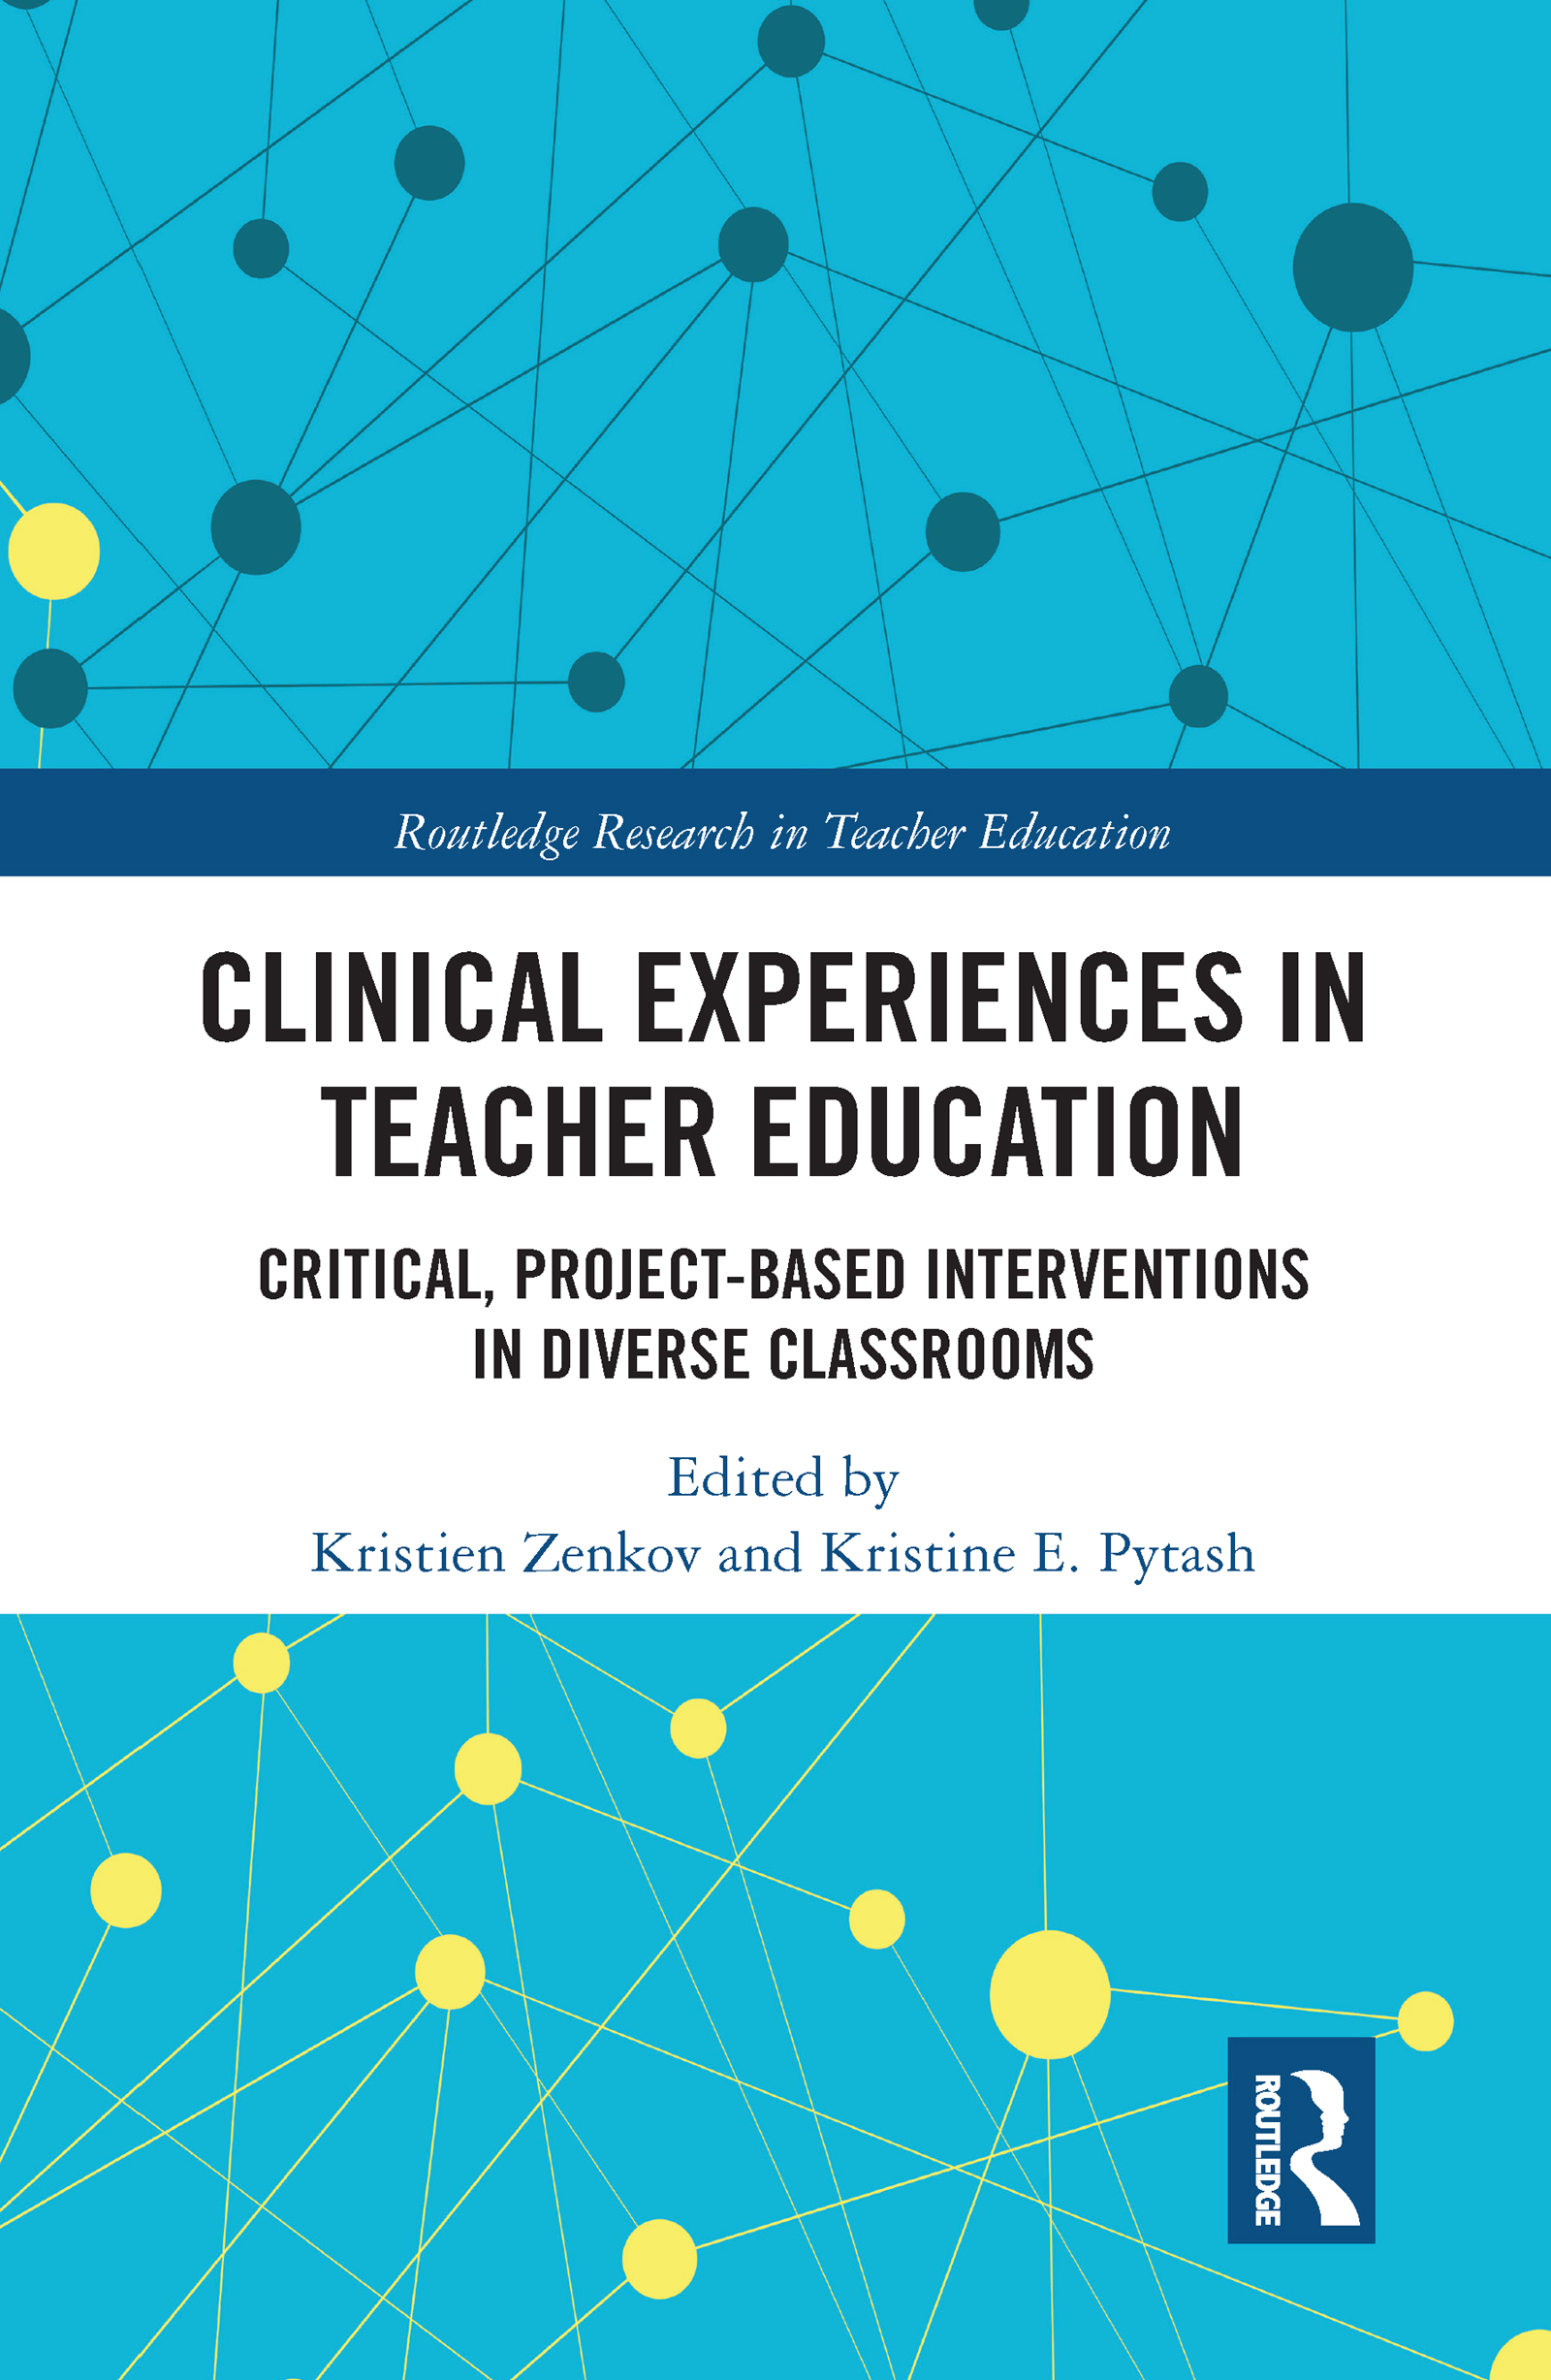 Clinical Experiences in Teacher Education